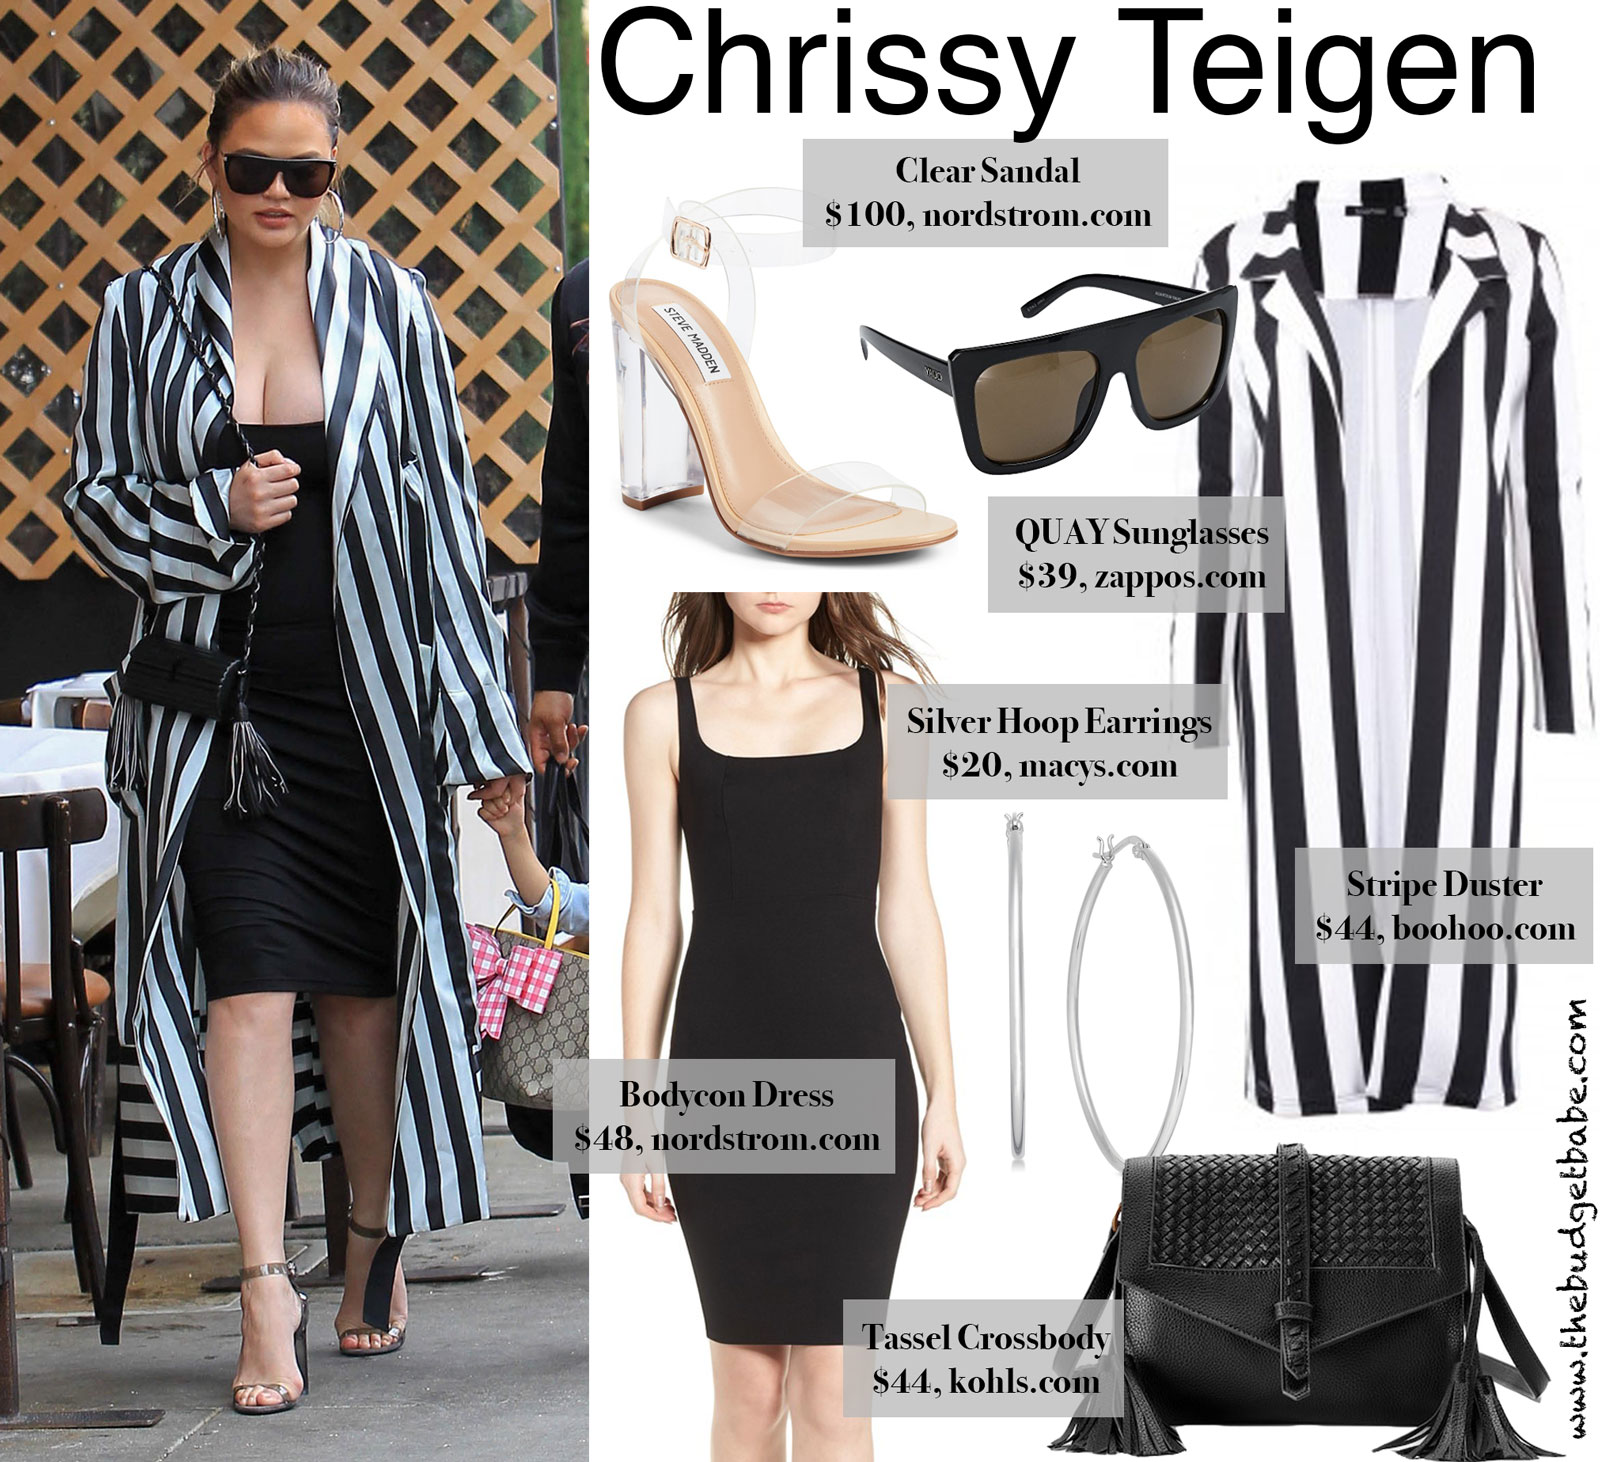 Chrissy Teigen Stripe Duster Look for Less